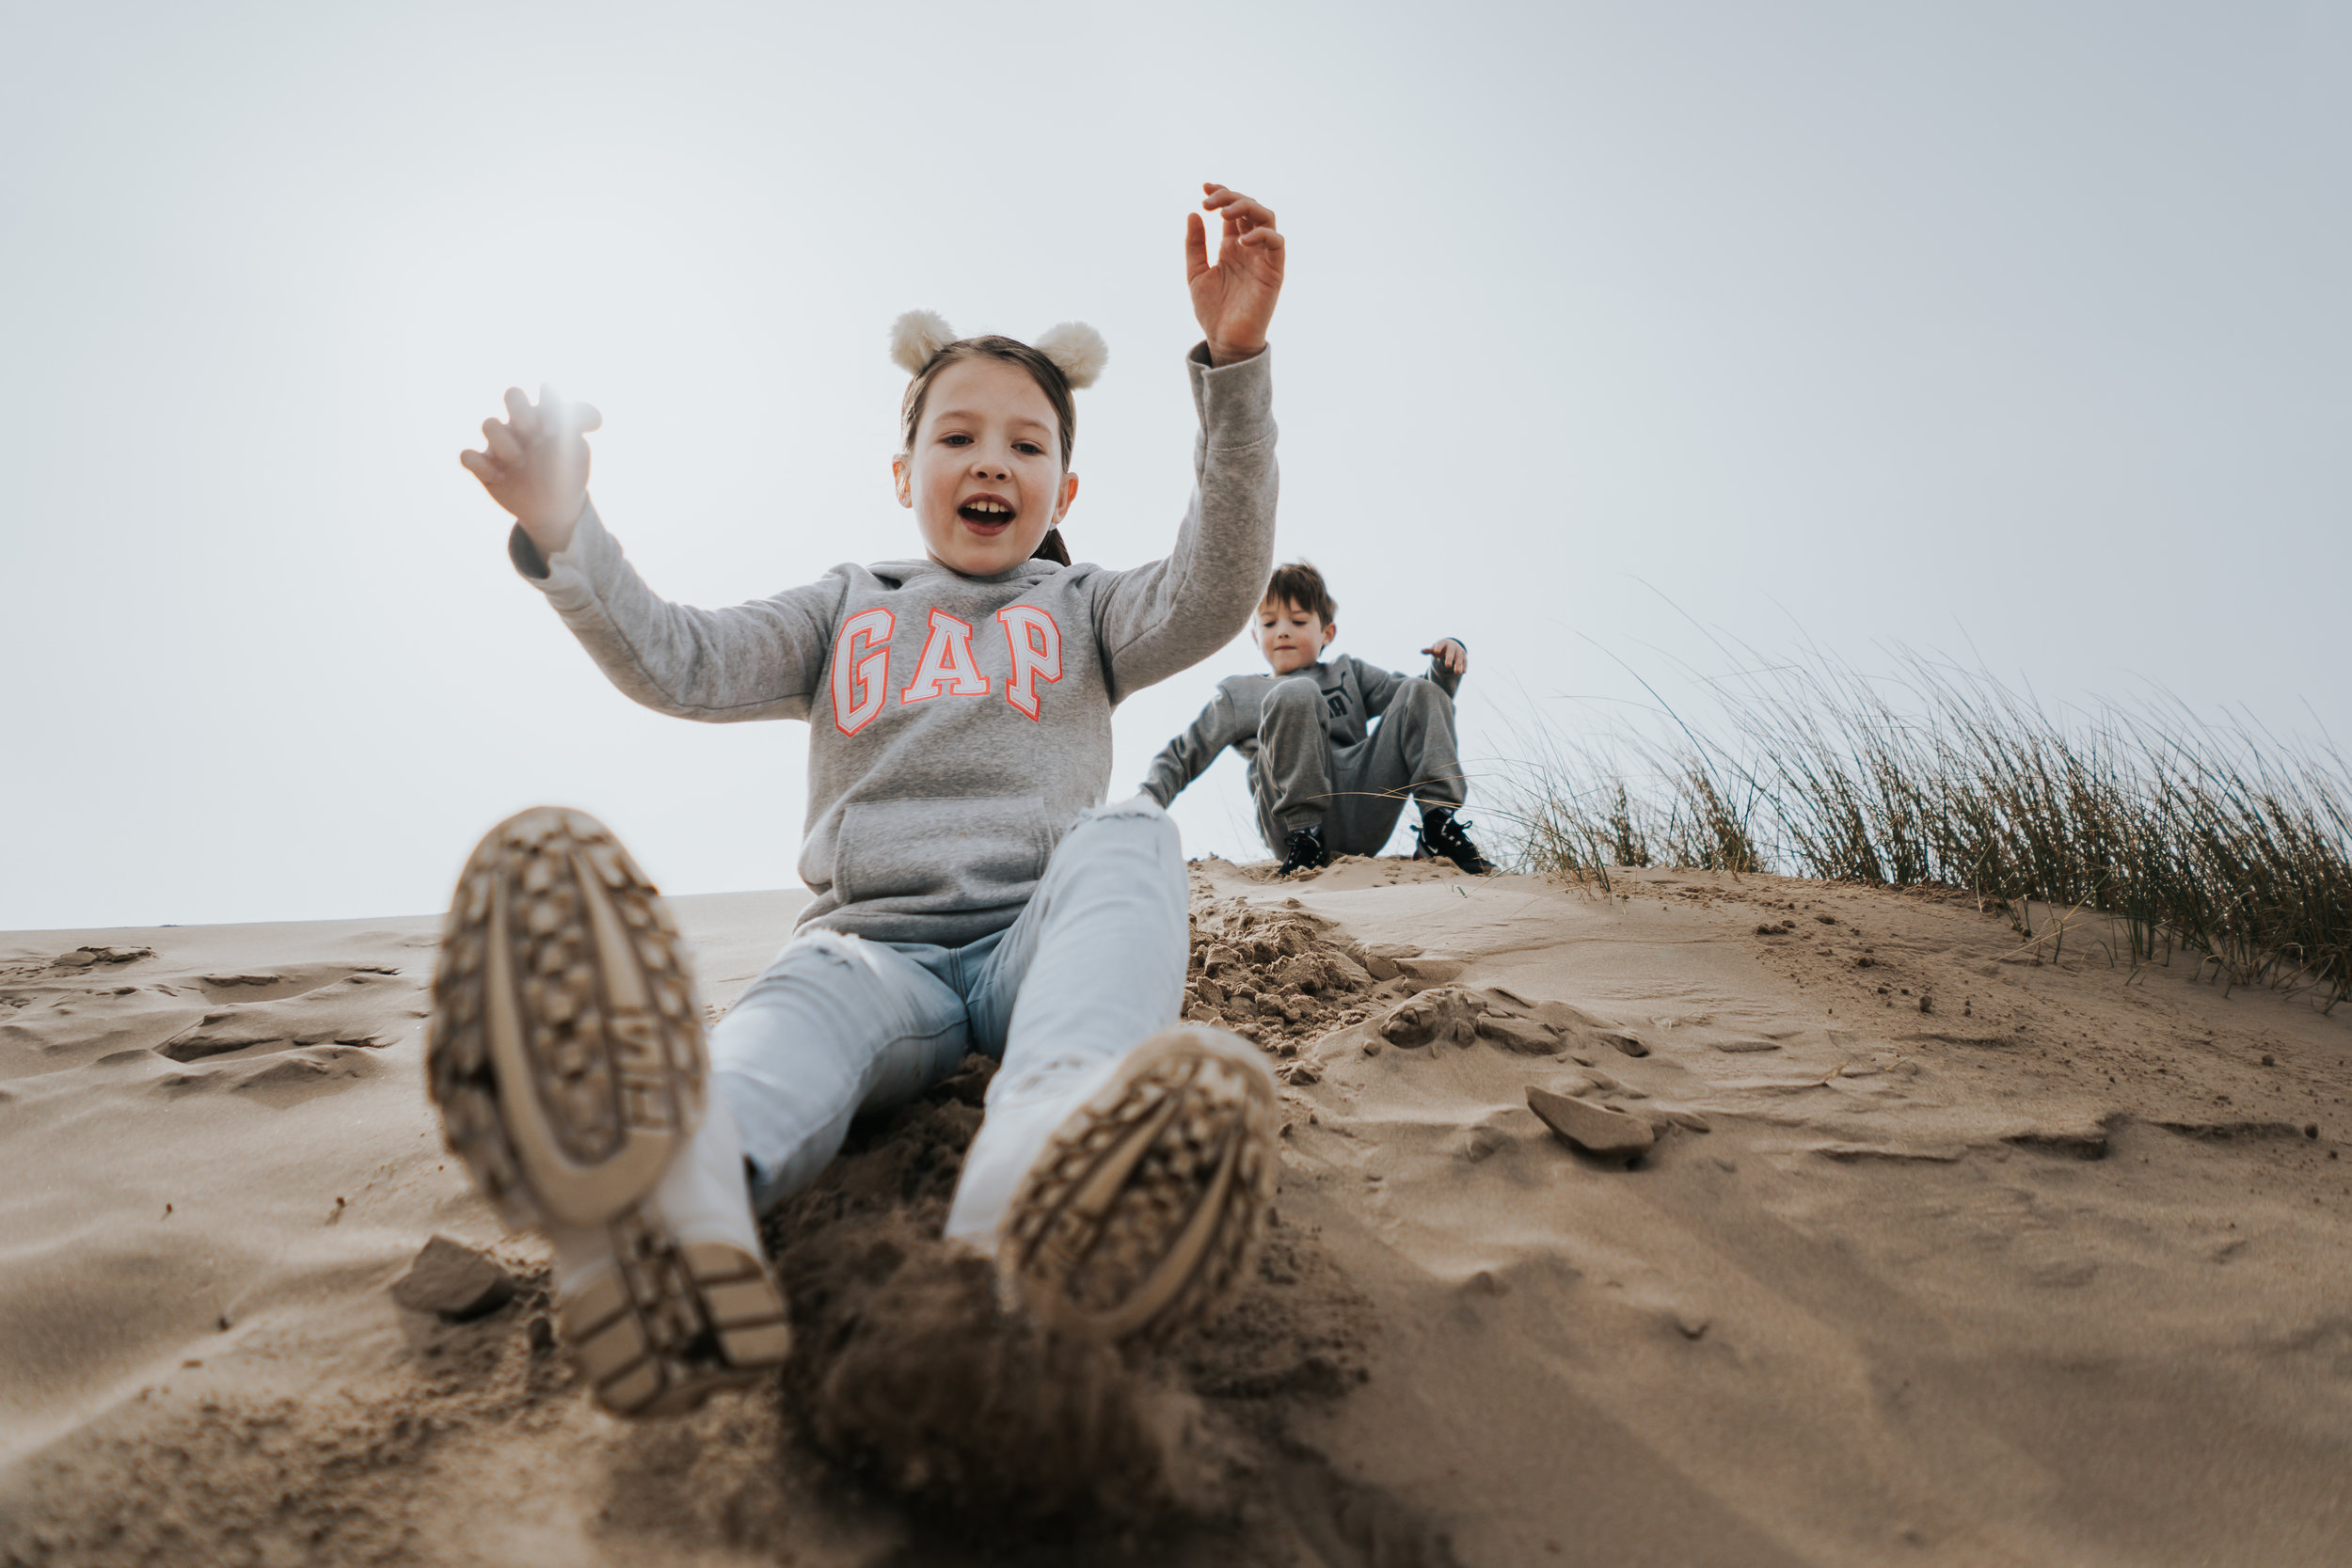 Formby Beach March 2019 - 039-High Res.jpg